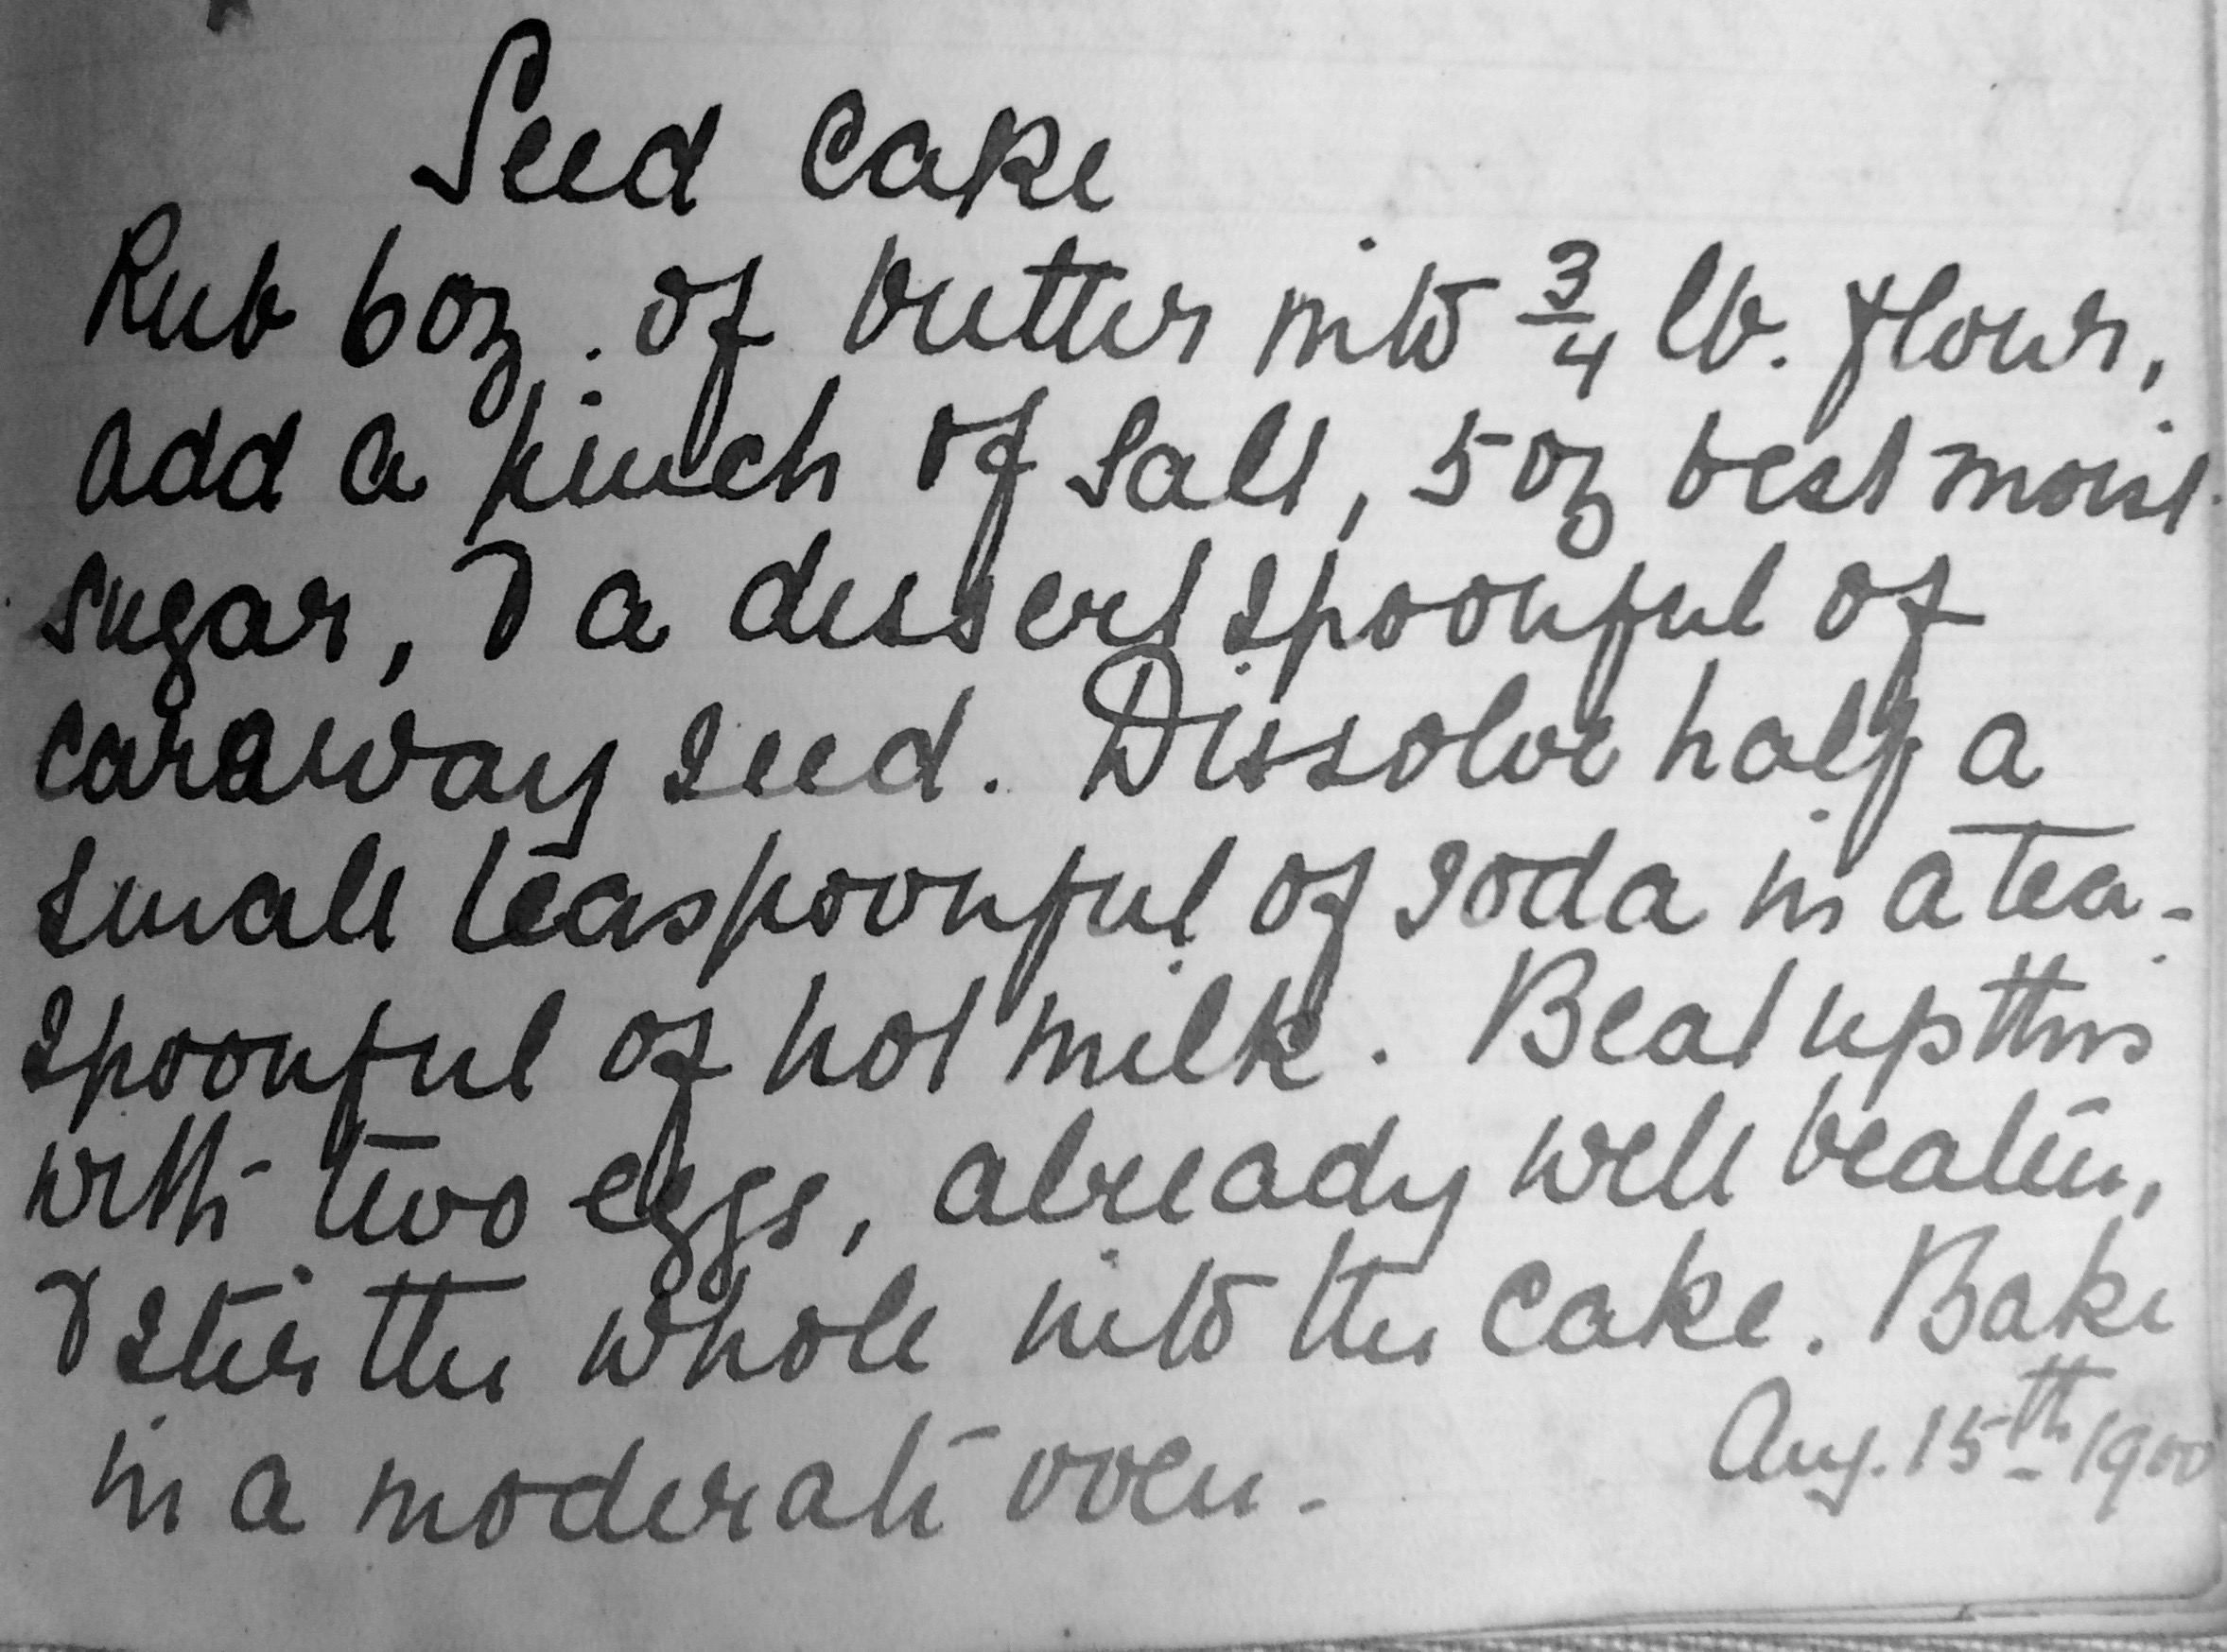 Granny Hall's Seed Cake recipe 1900